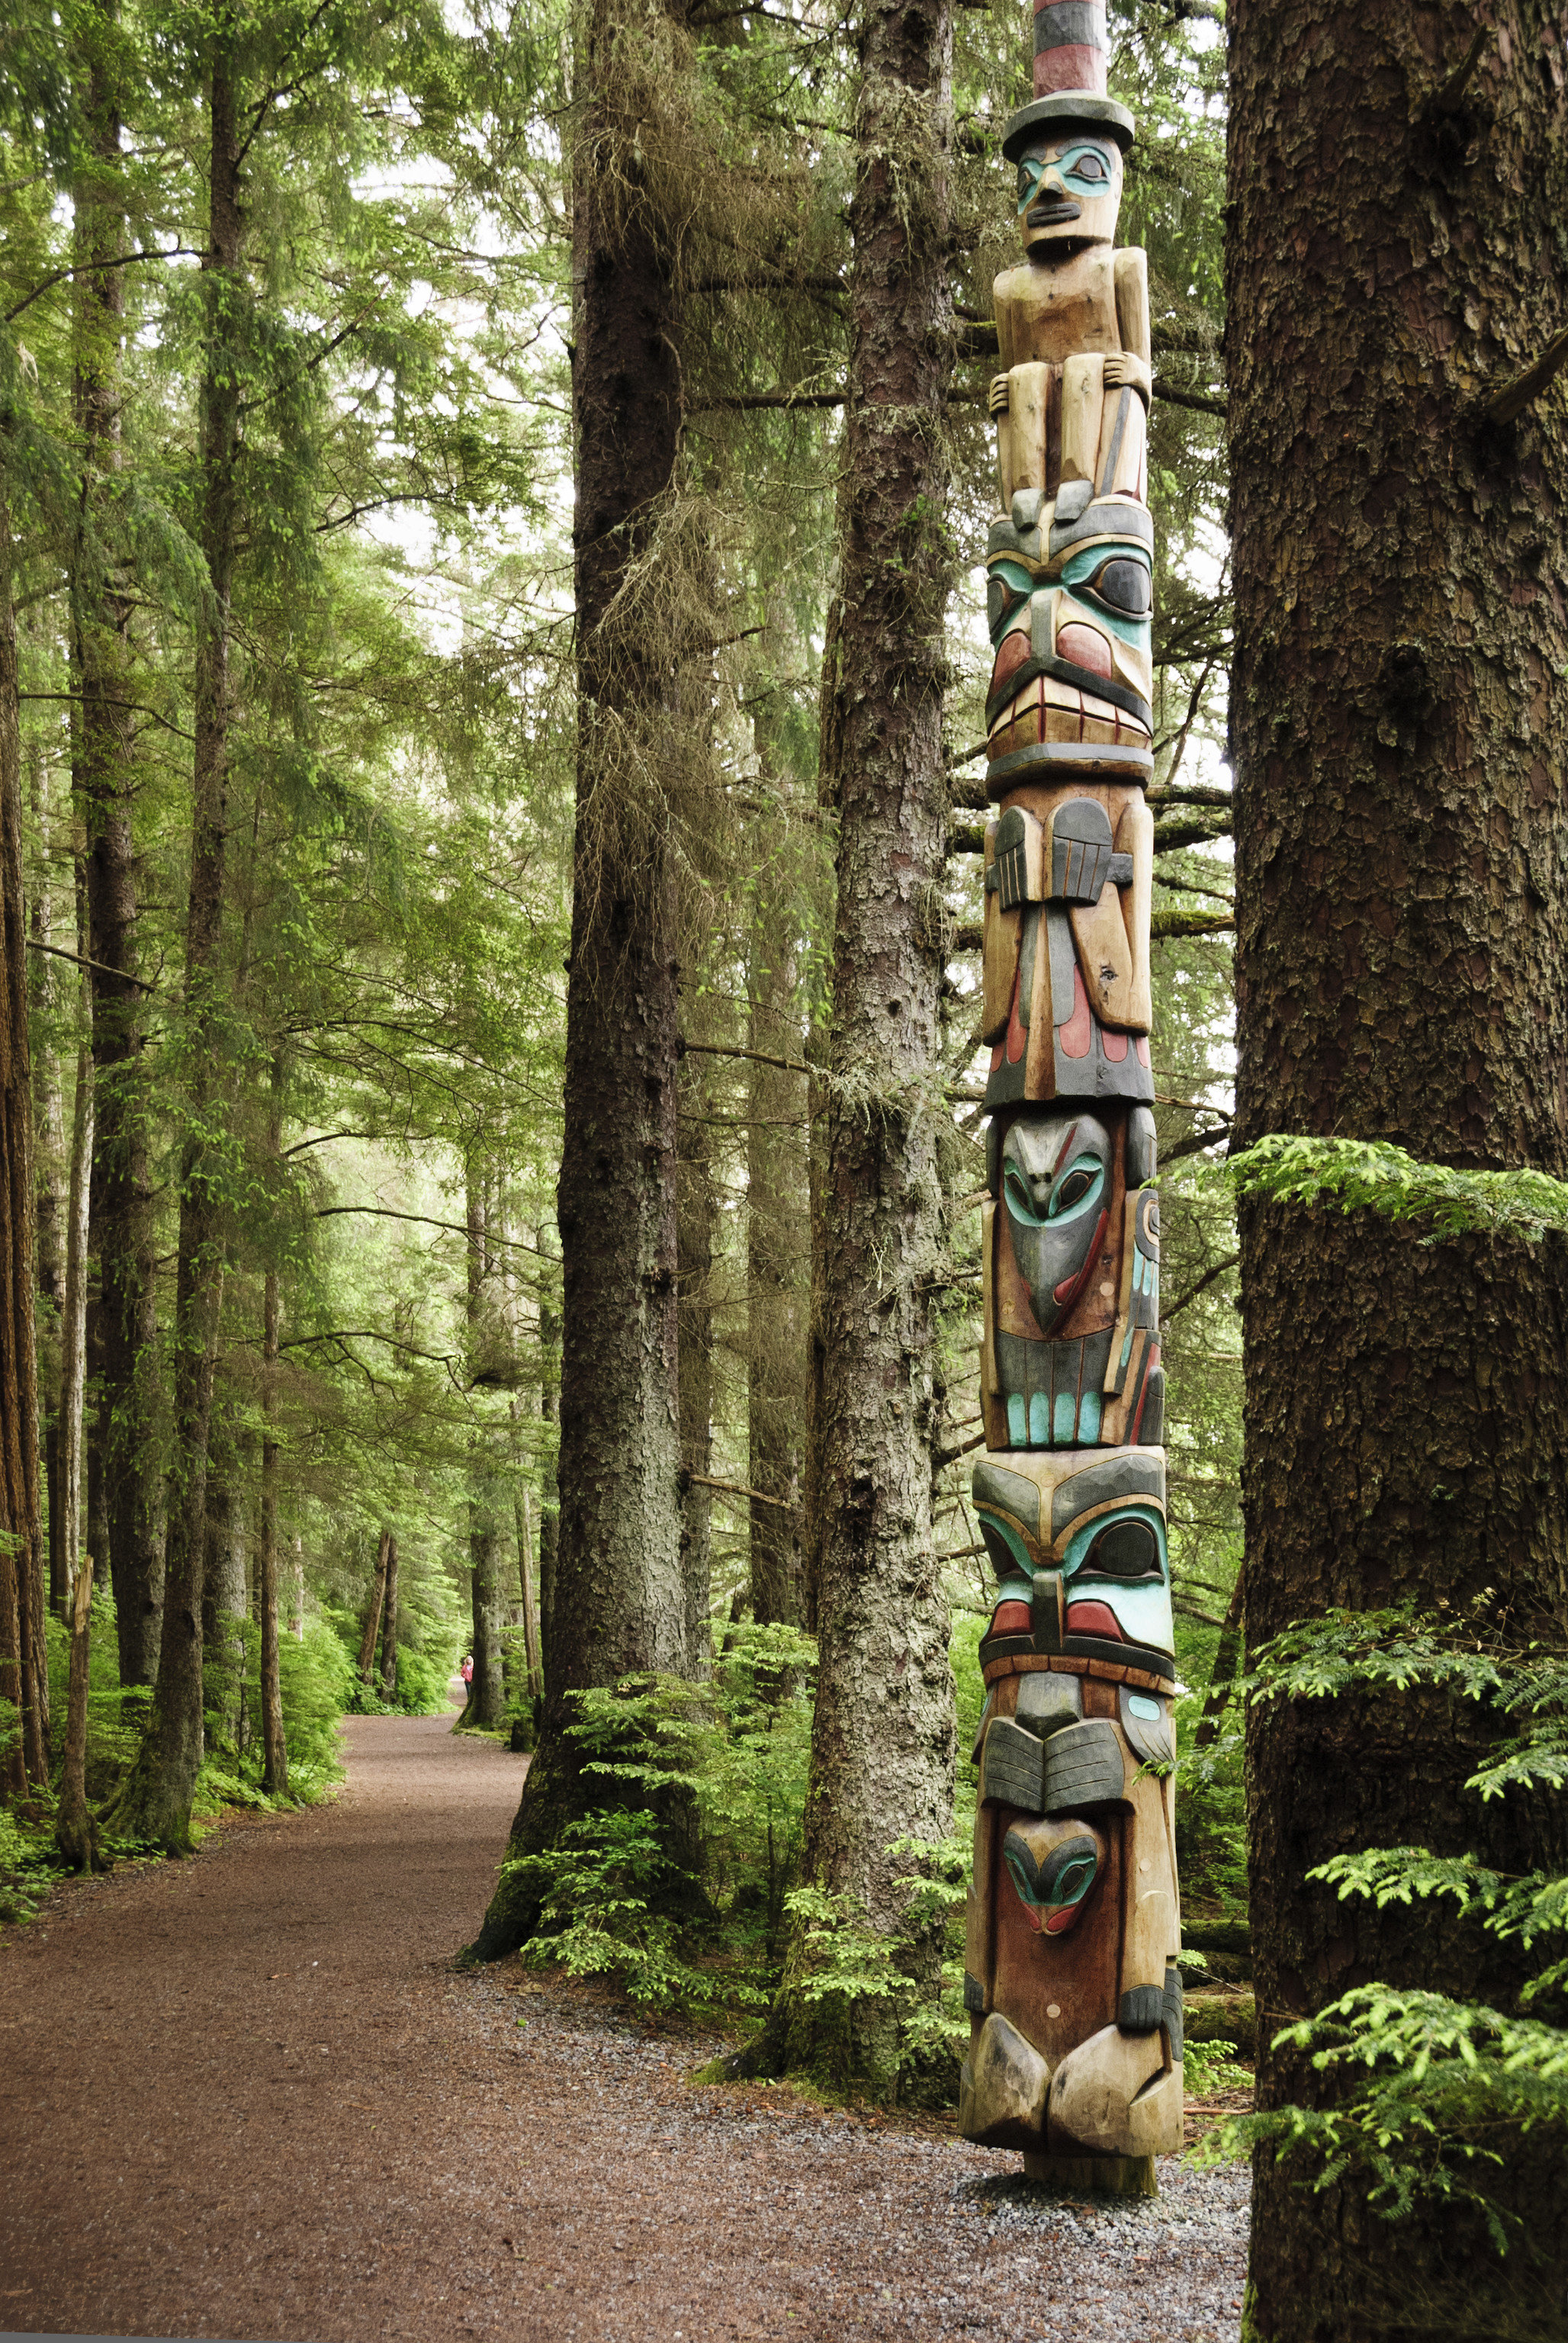 Trip Ideas outdoor object totem pole tree outdoor ground sculpture plant art Forest woody plant woodland wood outdoor structure totem path trunk wooded trail Garden dirt